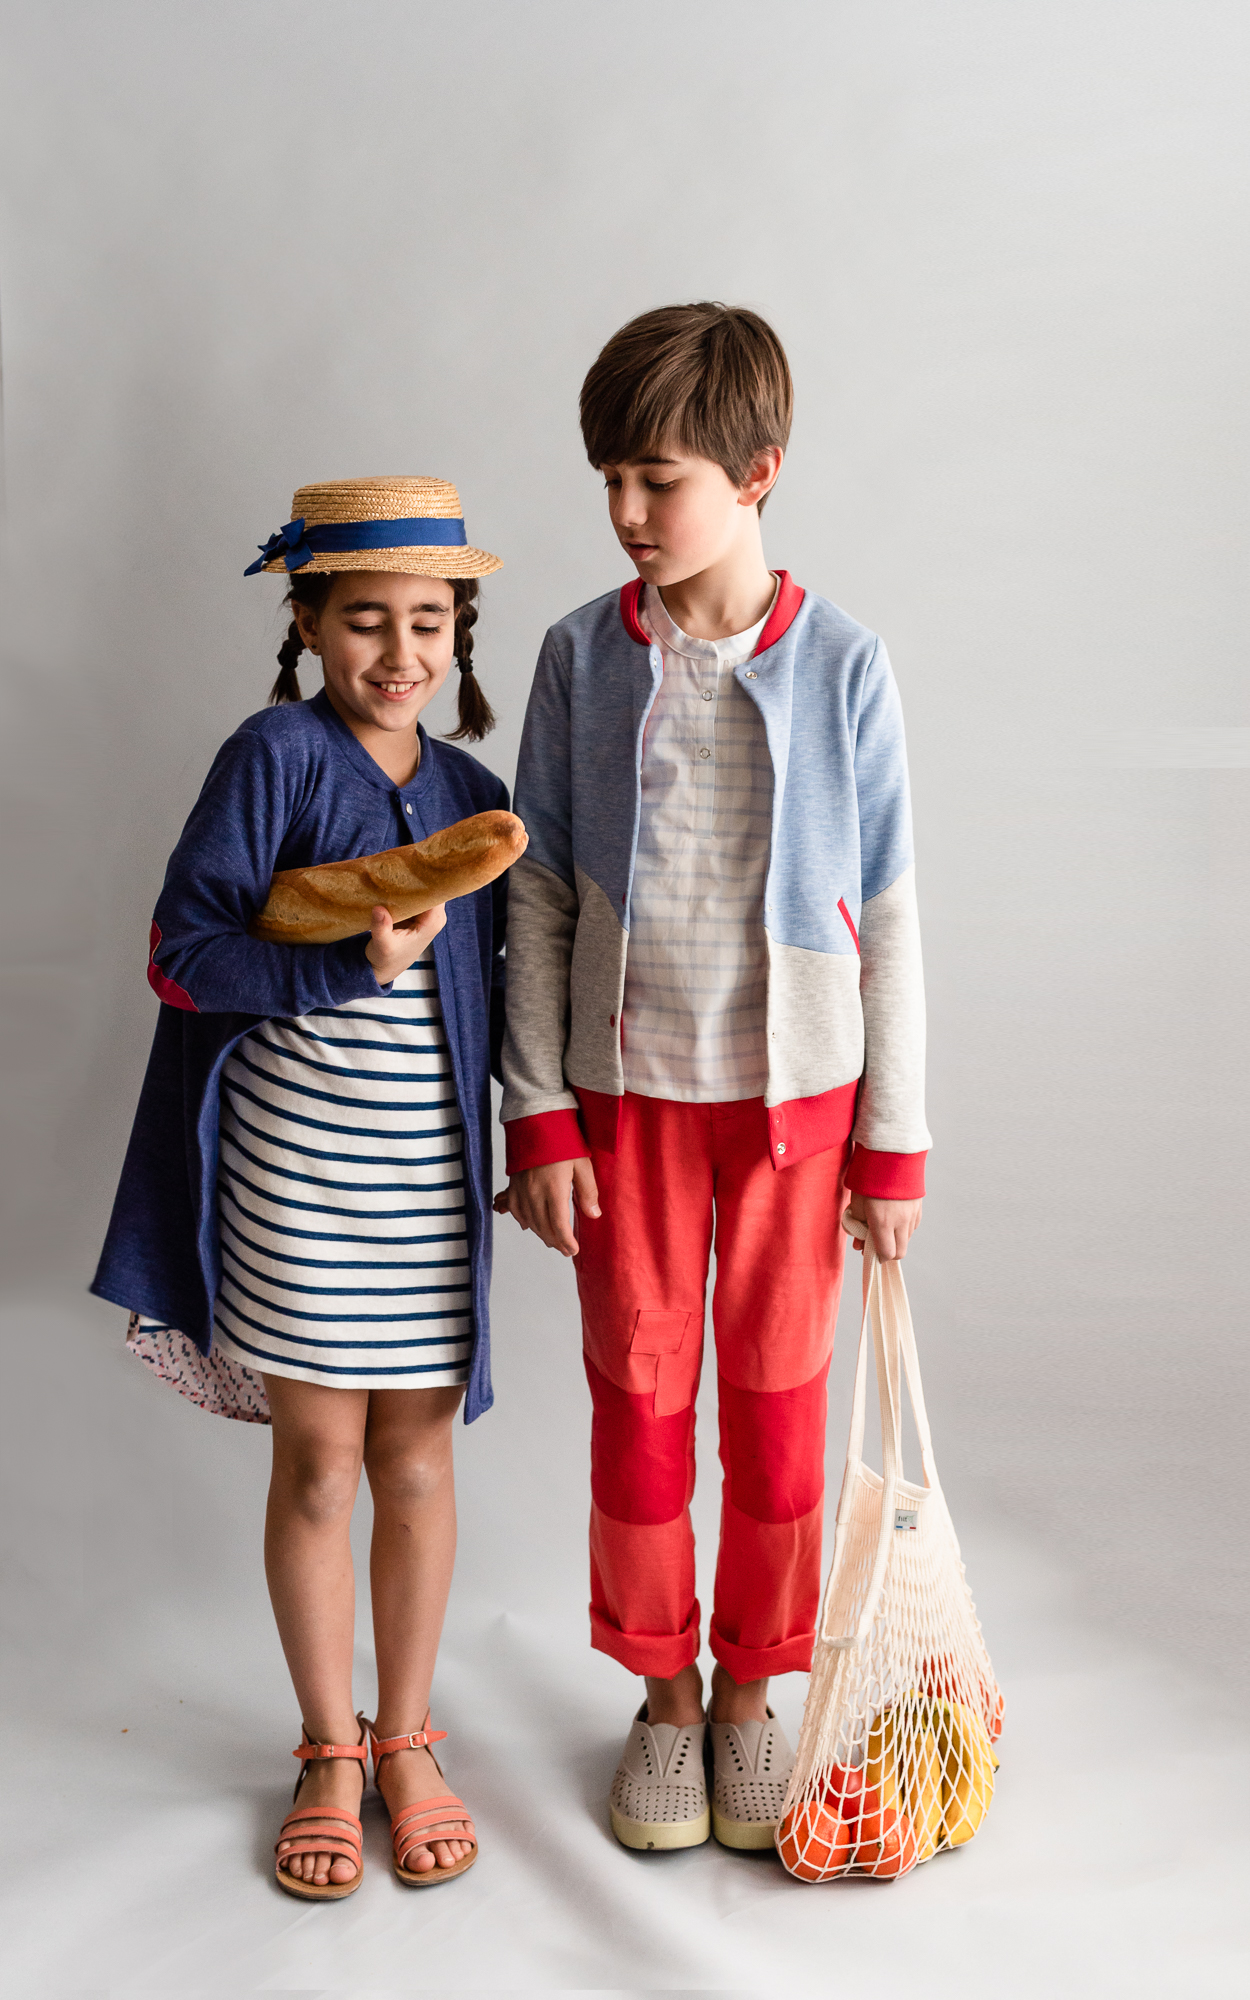 kids dressed in handmade clothes from pdf patterns and ready to go to the local farmer's market.